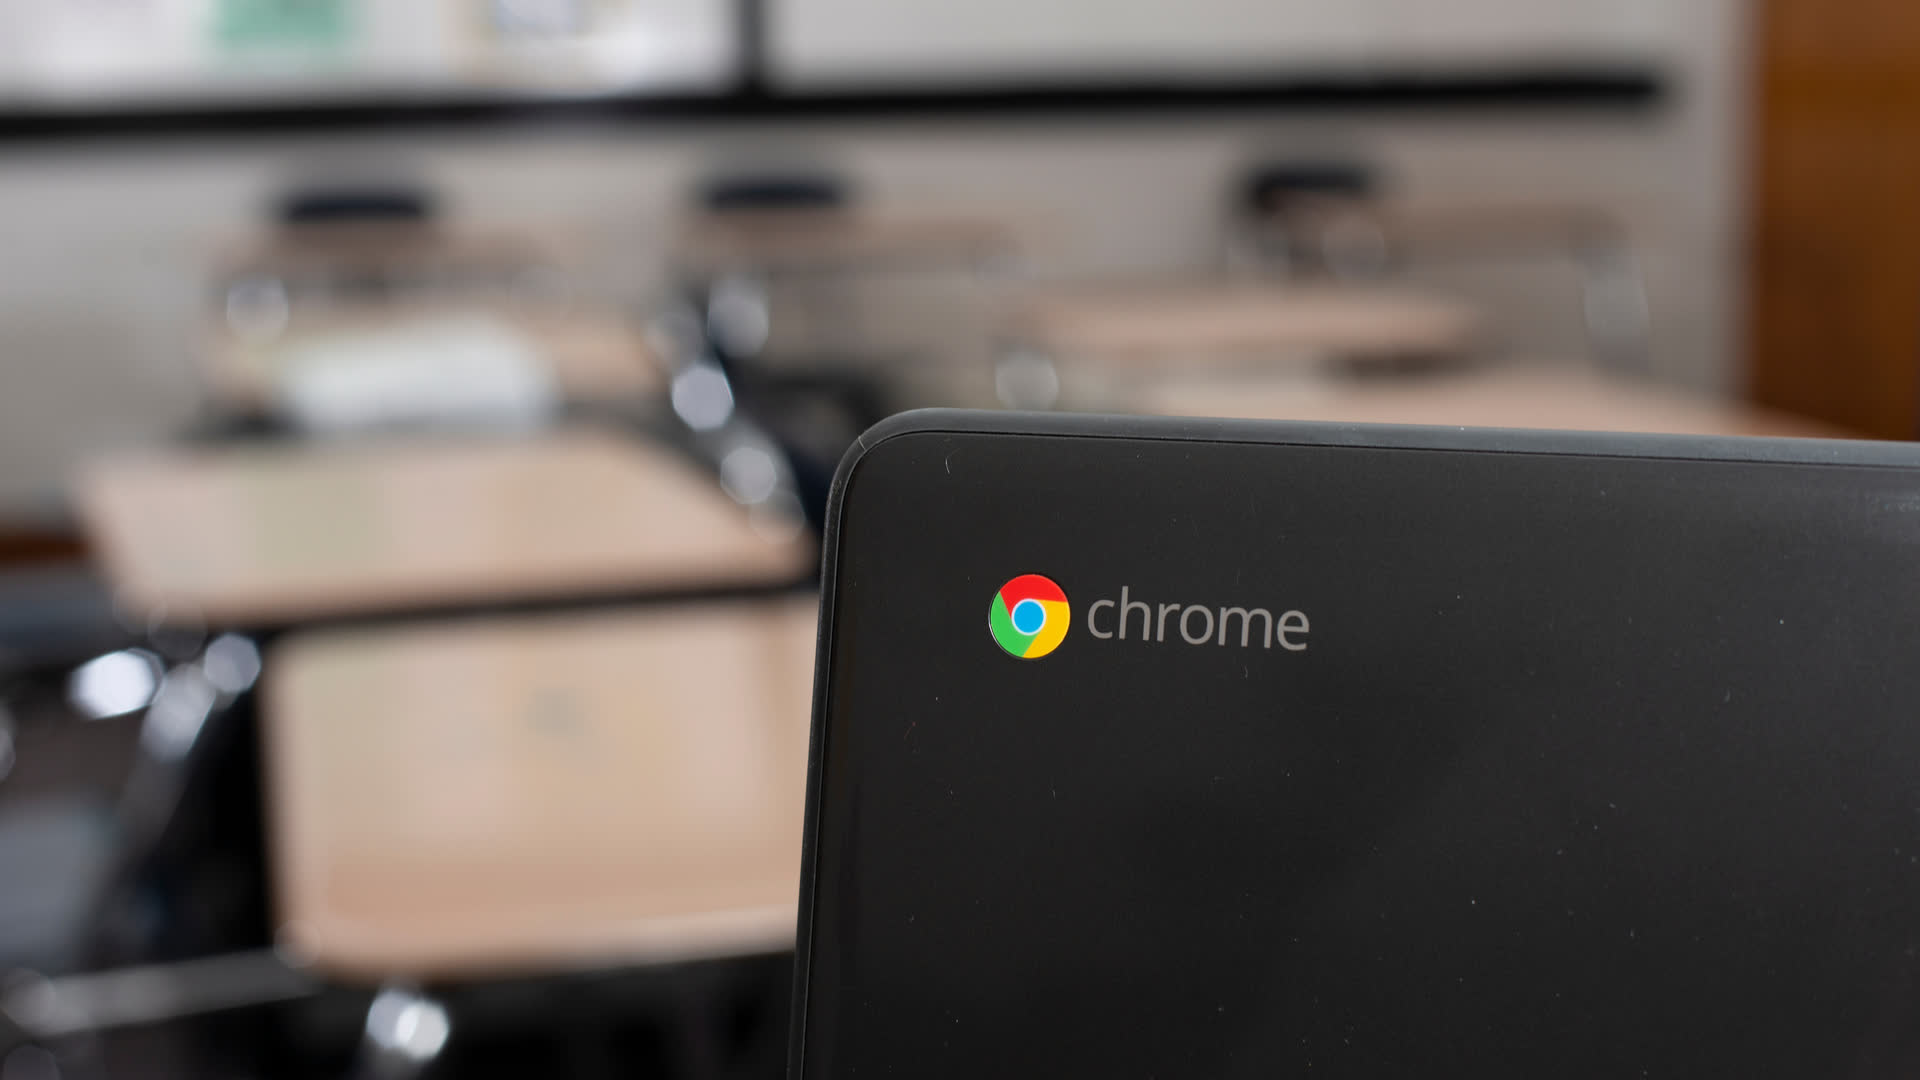 Chrome OS is getting a built-in screen reader and accessibility improvements